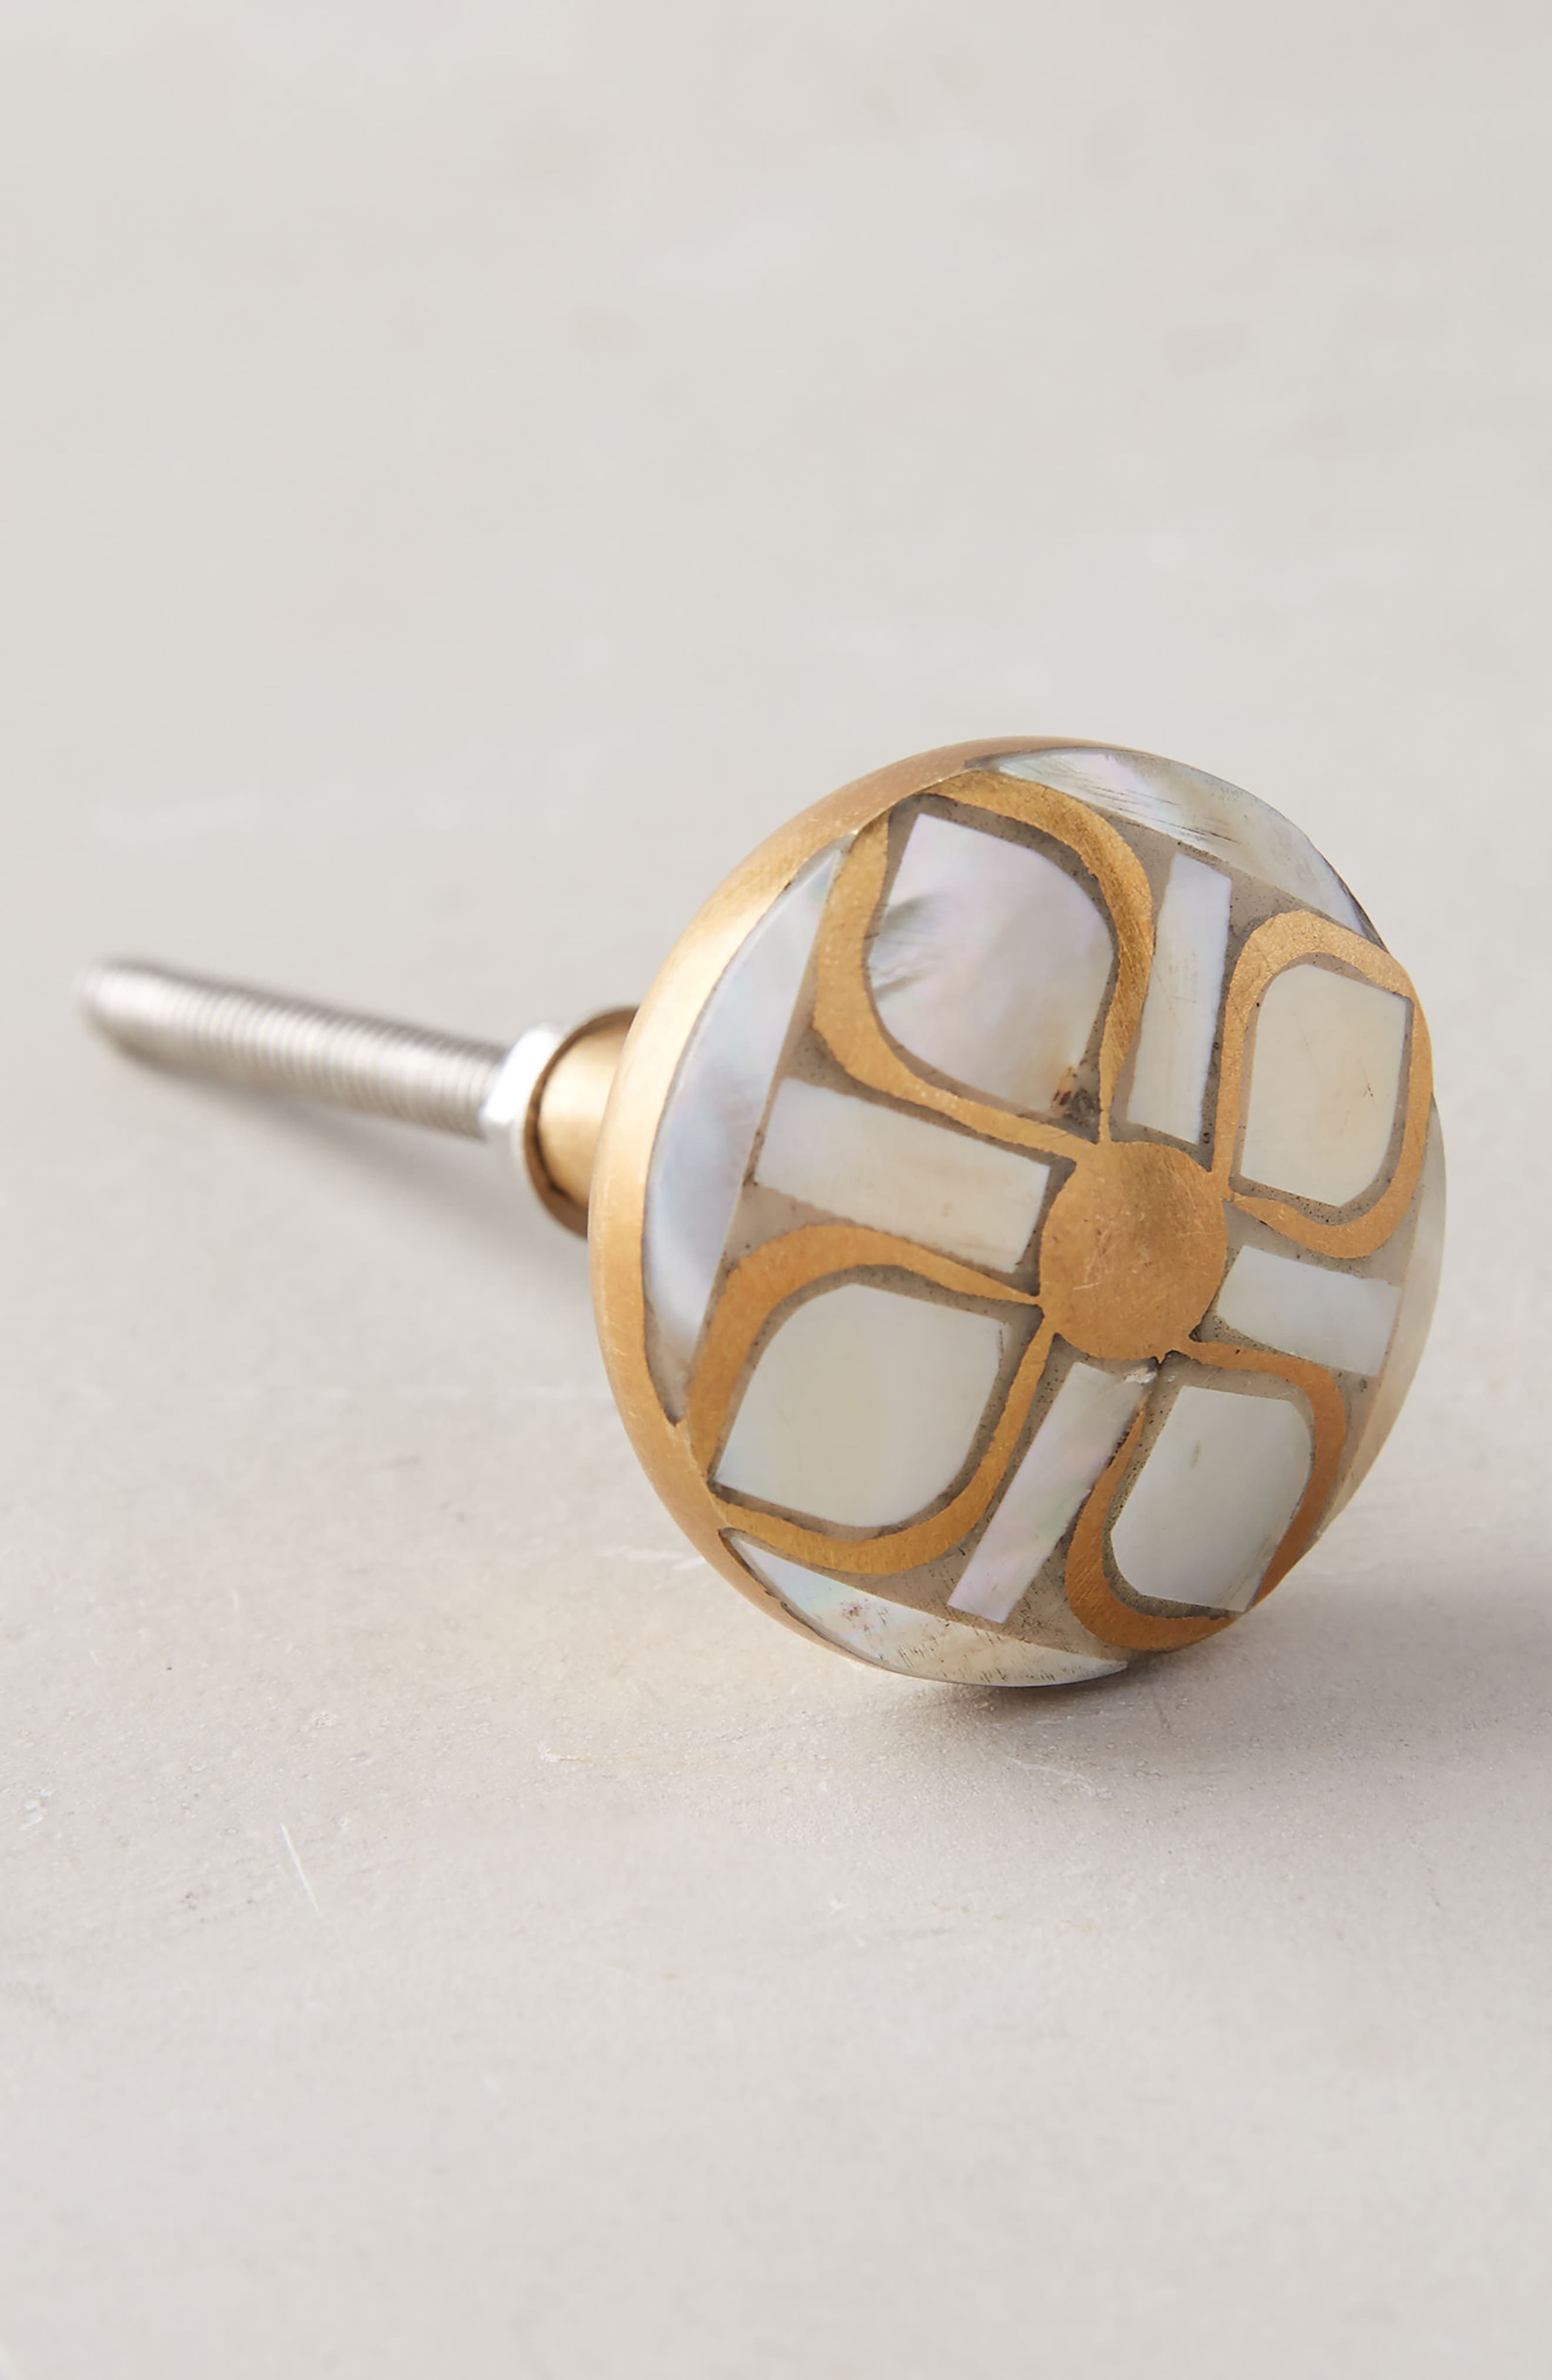 ANTHROPOLOGIE,                             Serpentine Mother of Pearl Knob,                             Alternate thumbnail 2, color,                             250